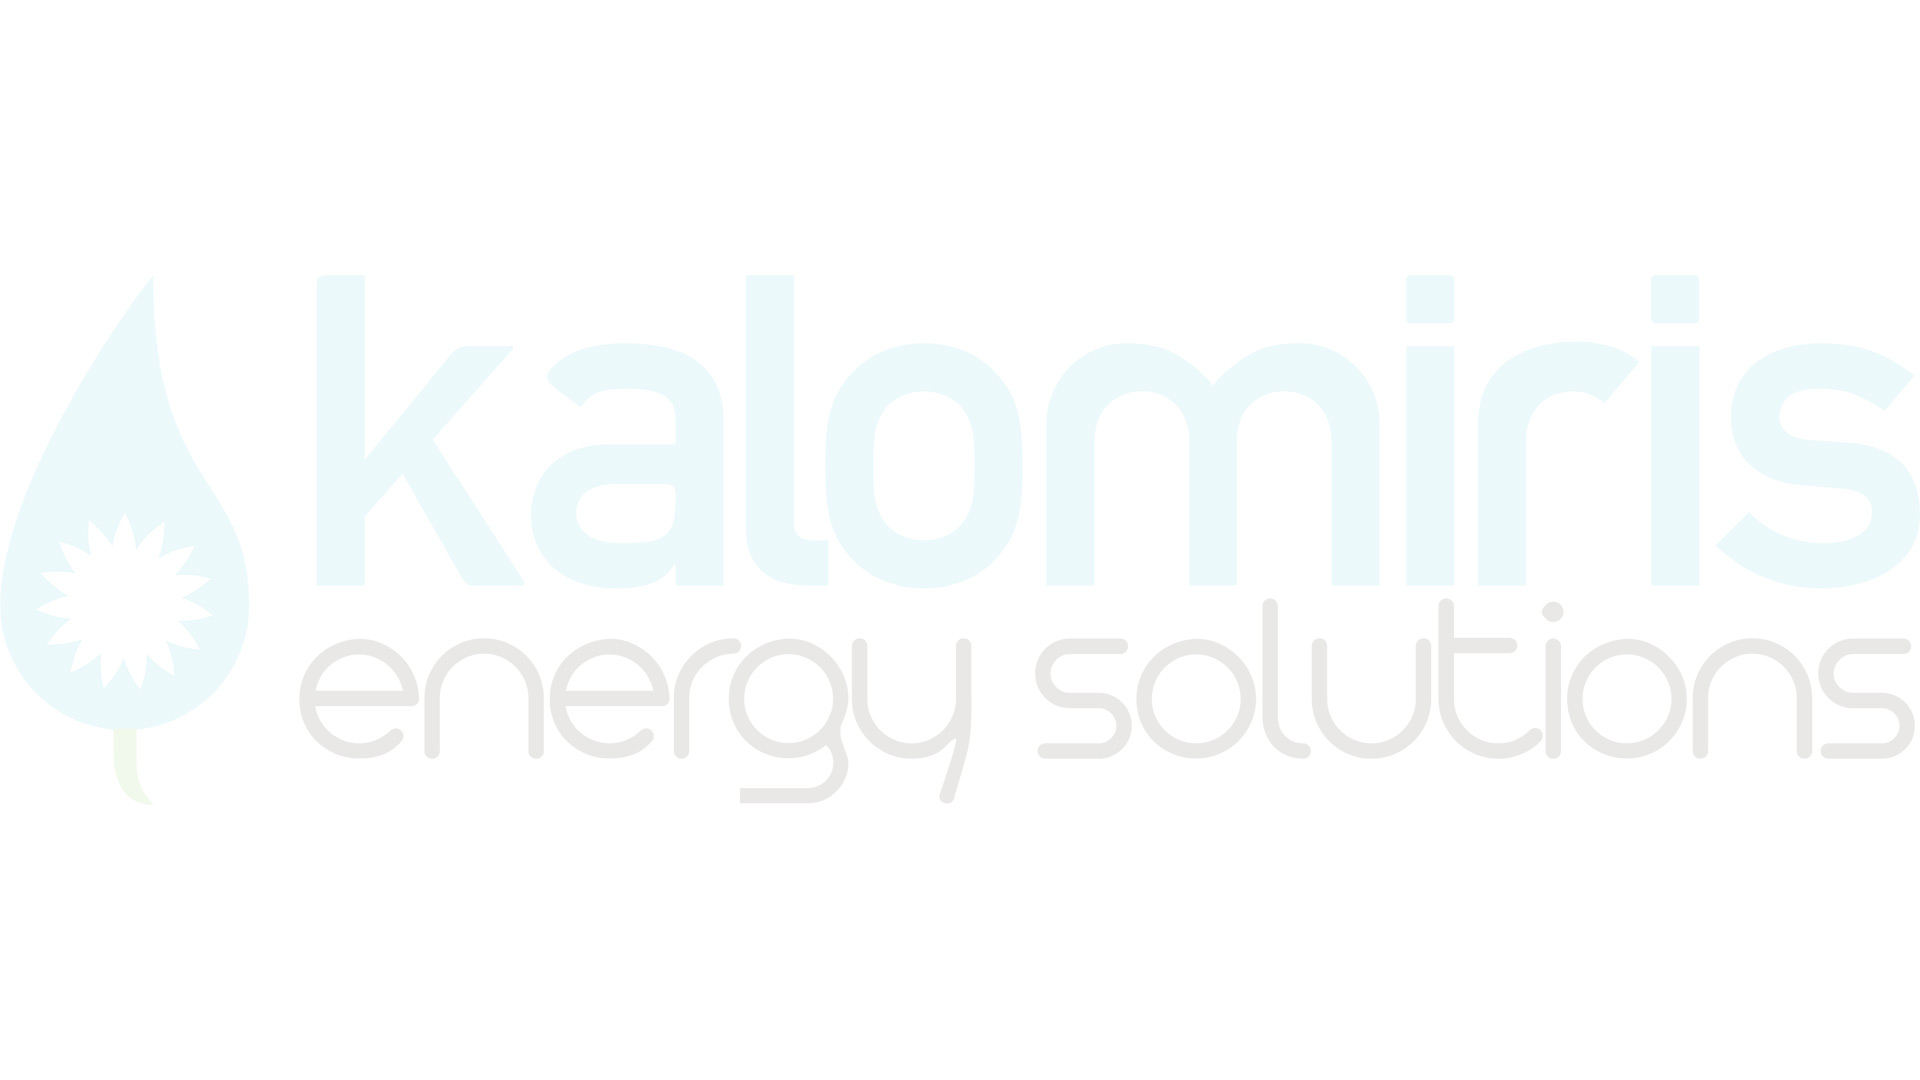 Ceiling Fan CASAFAN ECO NEO II 132 CH Beech / Maple 52 (132cm) with Light KIT